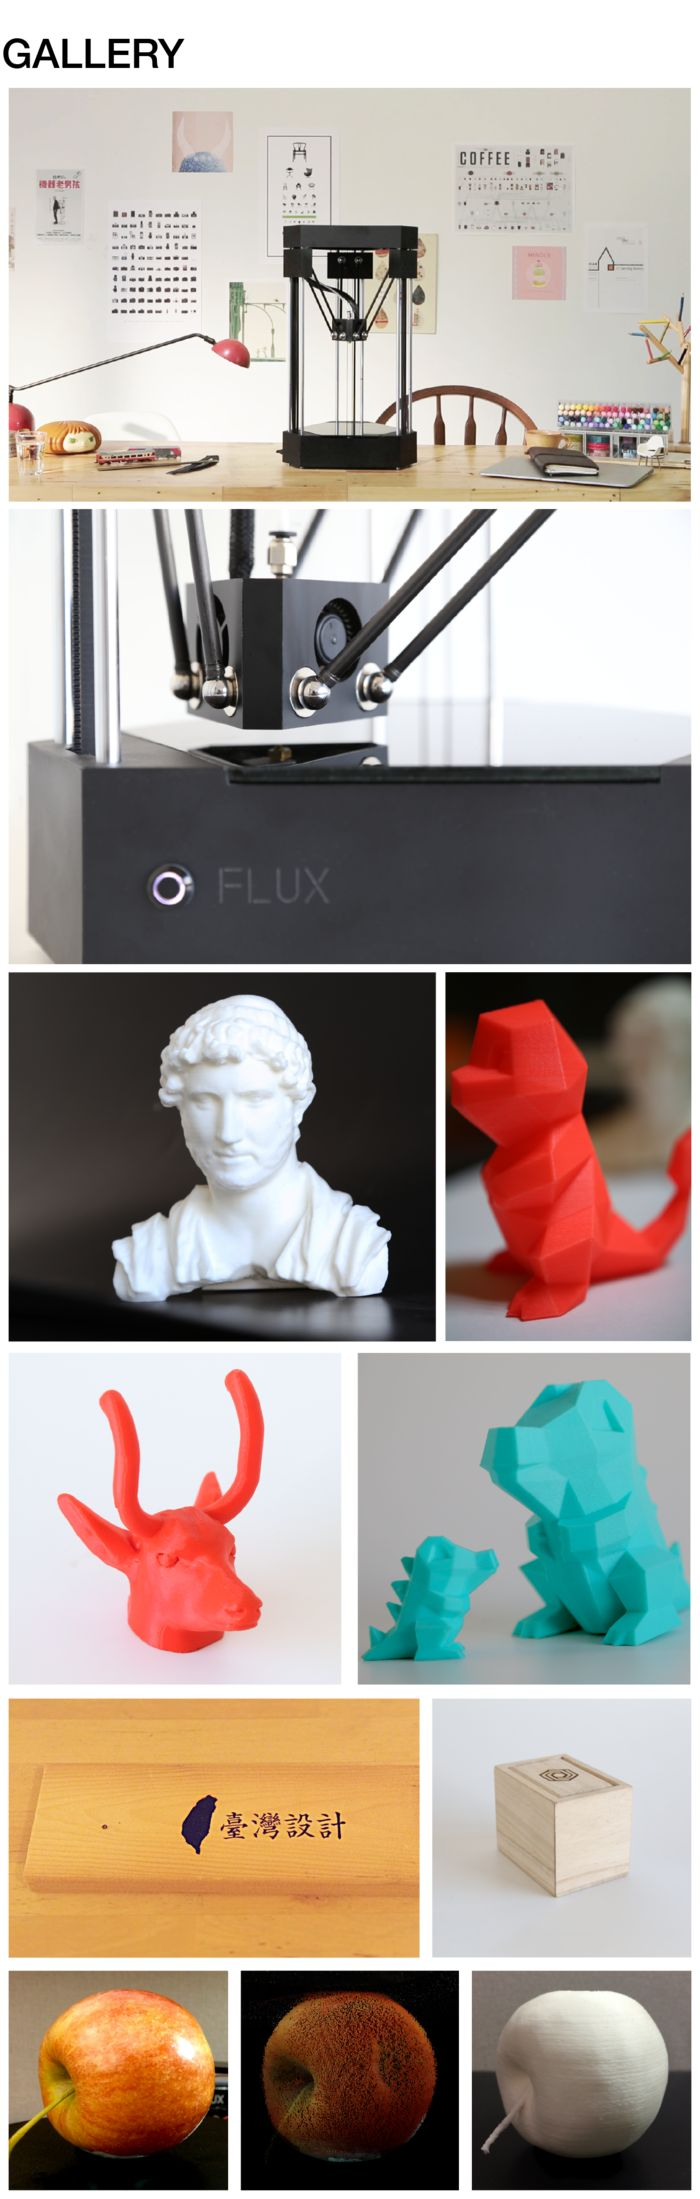 FLUX All-in-One 3D Printer - UNLIMITED. ELEGANT. SIMPLE. by FLUX Technology LLC — Kickstarter